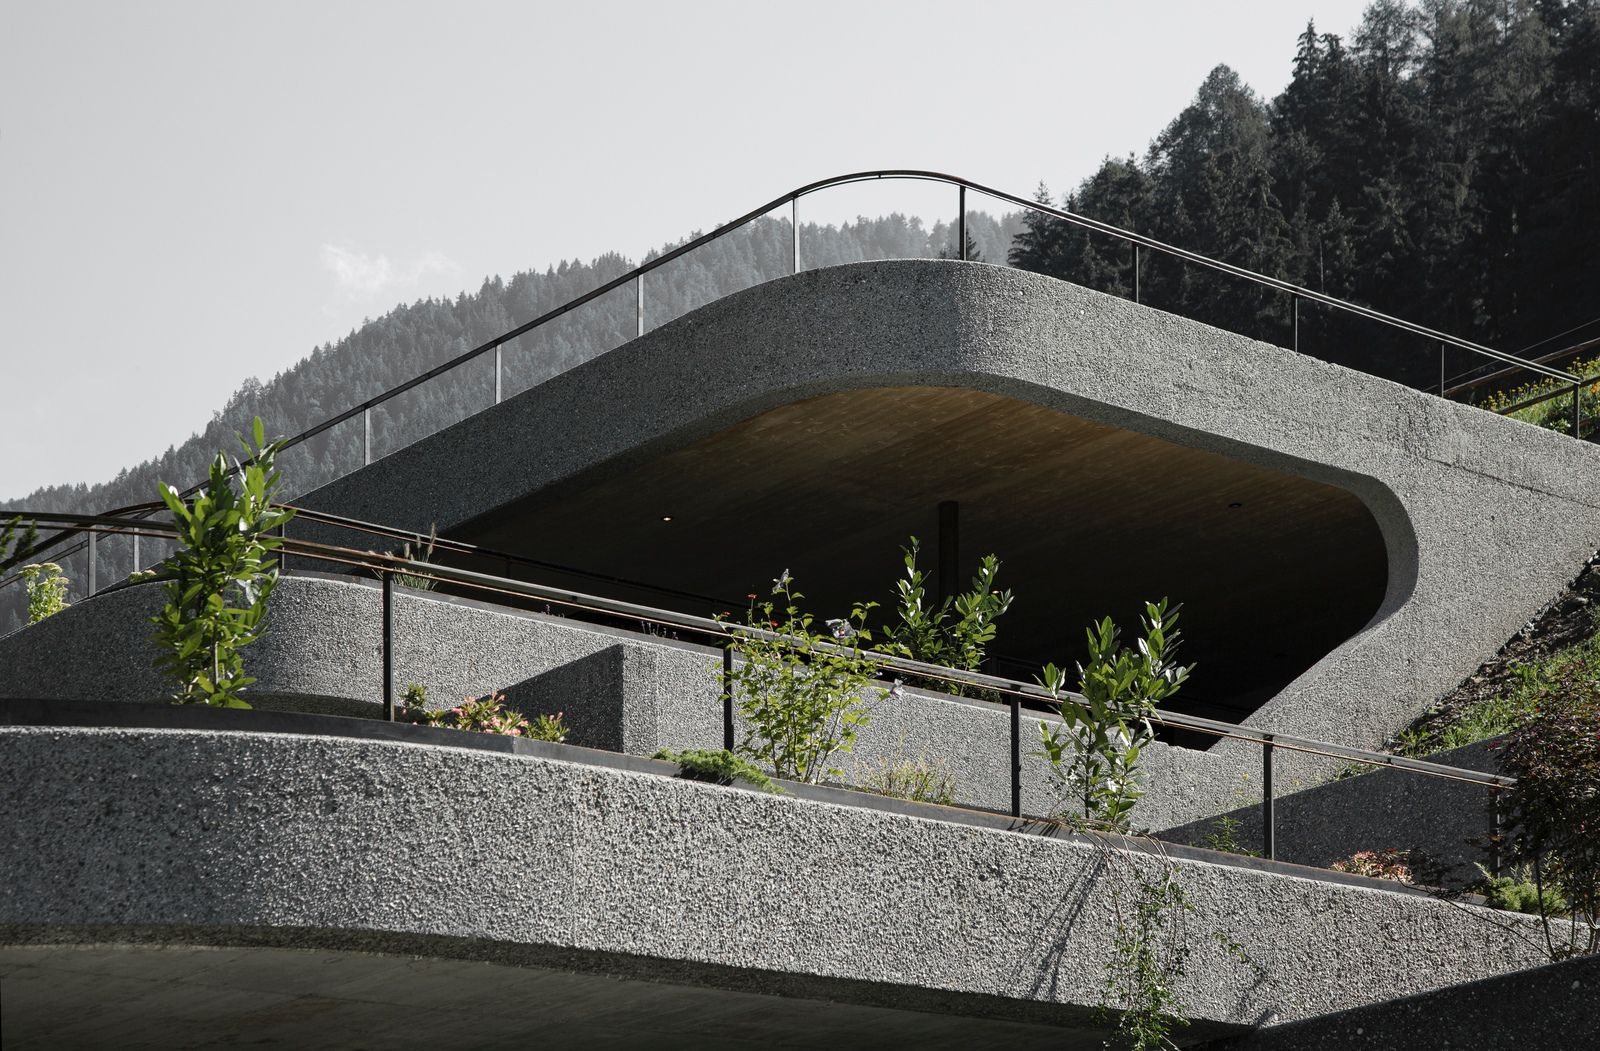 HAUS GASSER IN LÜSEN-ITALY, DESIGNED BY KONOA ARCHITECTS